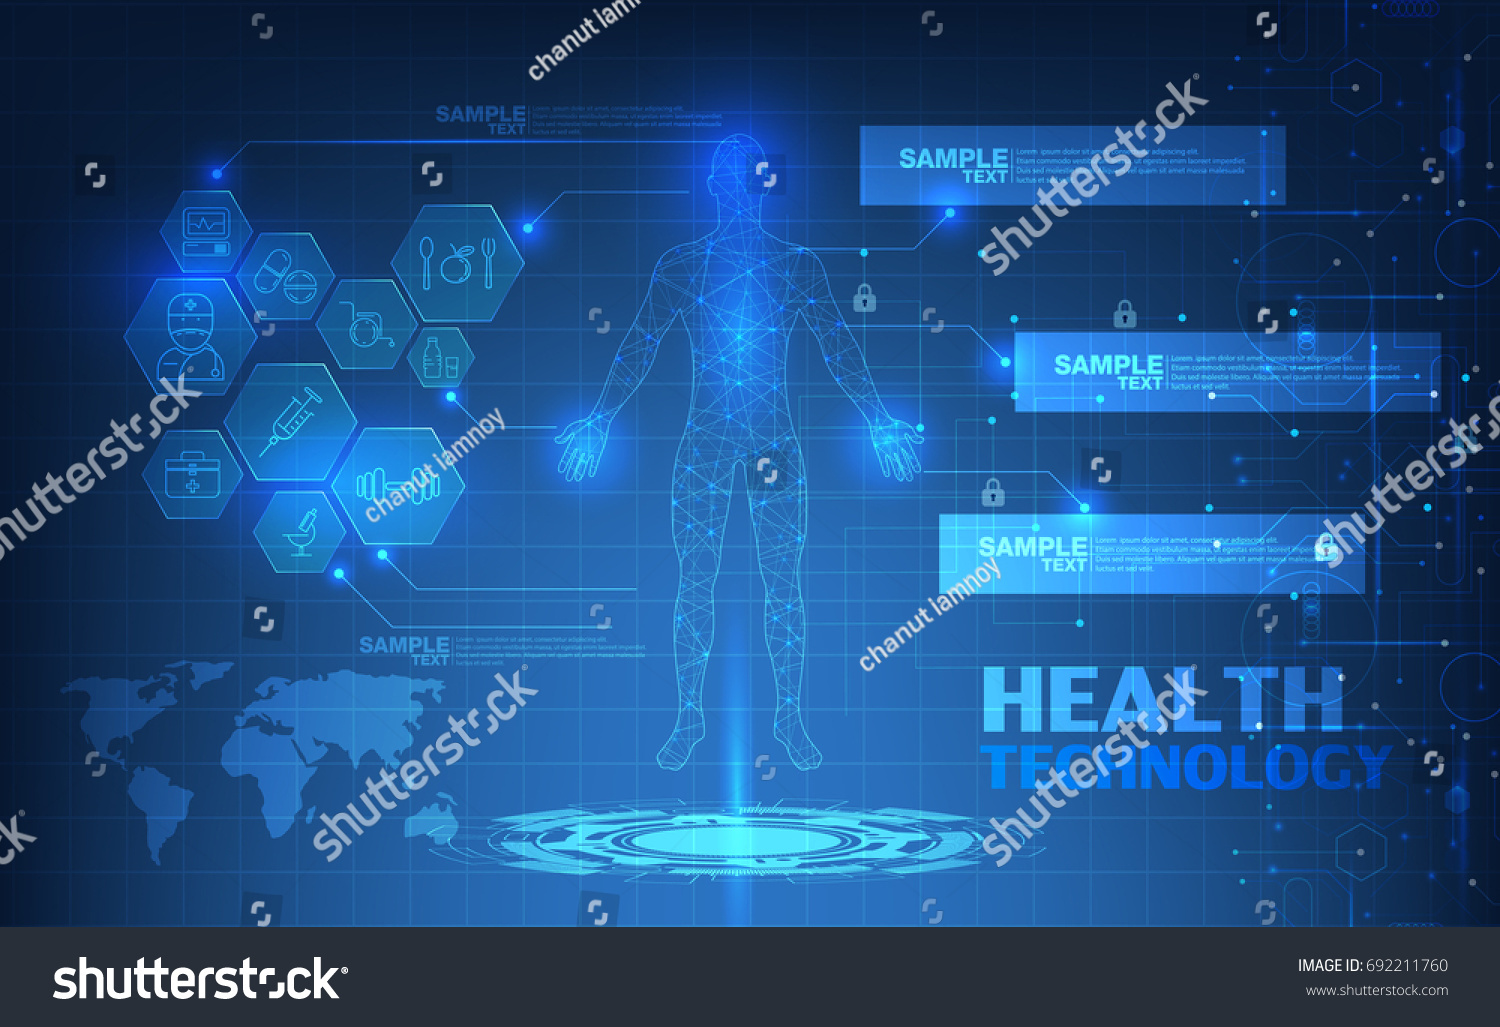 Abstract technological health care science blue stock vector abstract technological health care science blue print scientific interface futuristic backdrop digital malvernweather Choice Image